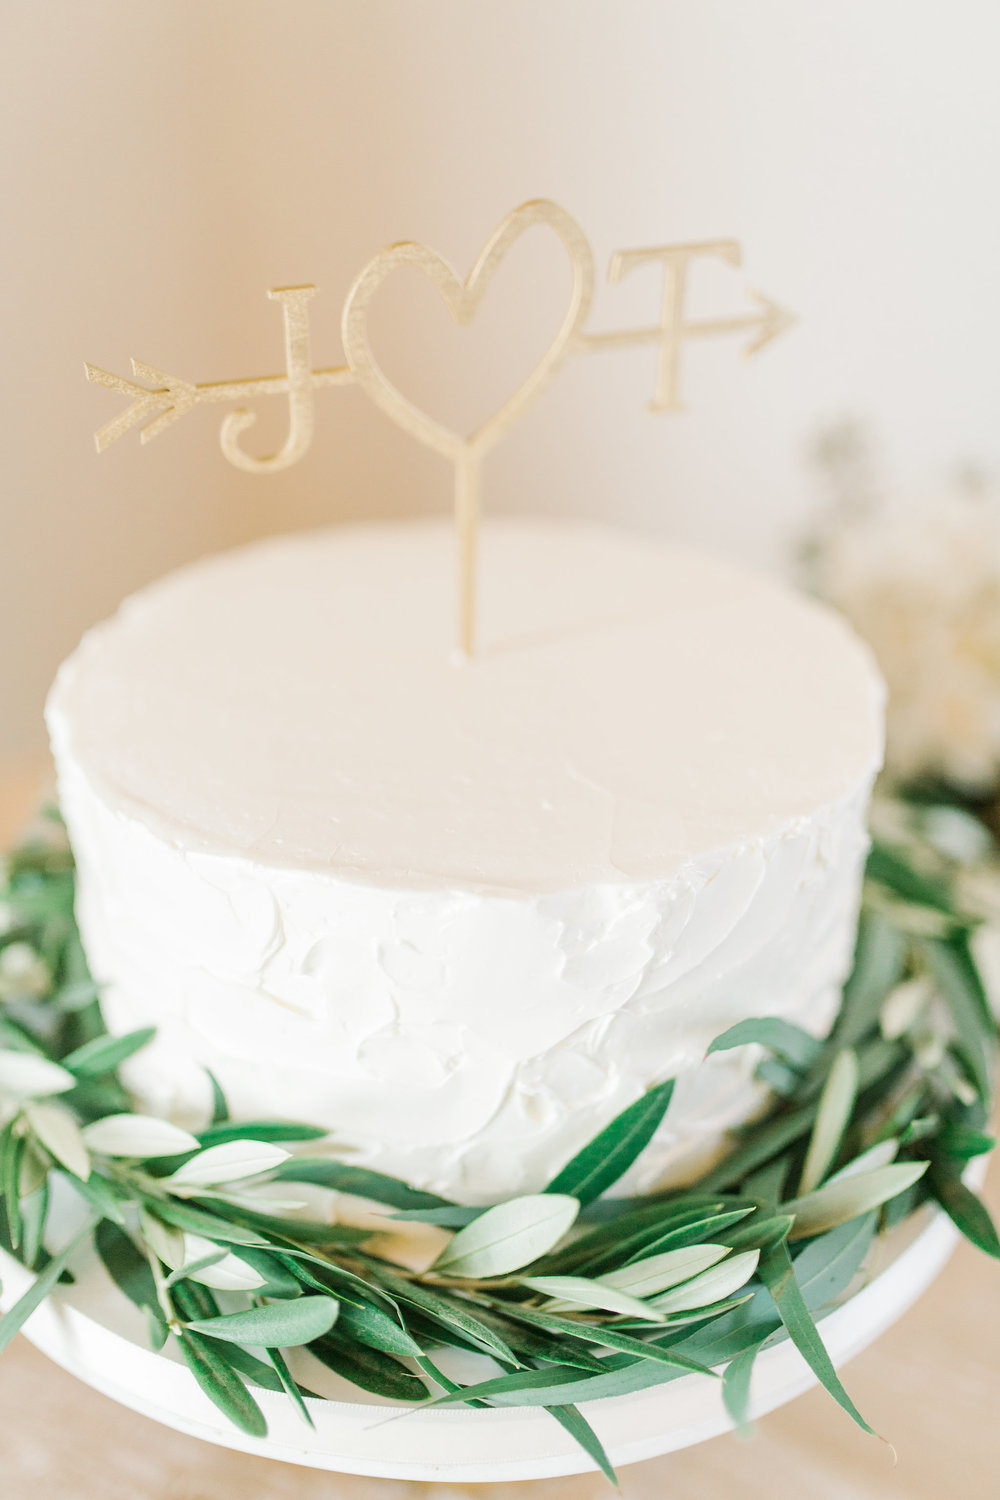 San Clemente, San clemente beach wedding, the casino san clemente, simple wedding cake olive greens, initial wedding cake topper, minimalist wedding cake